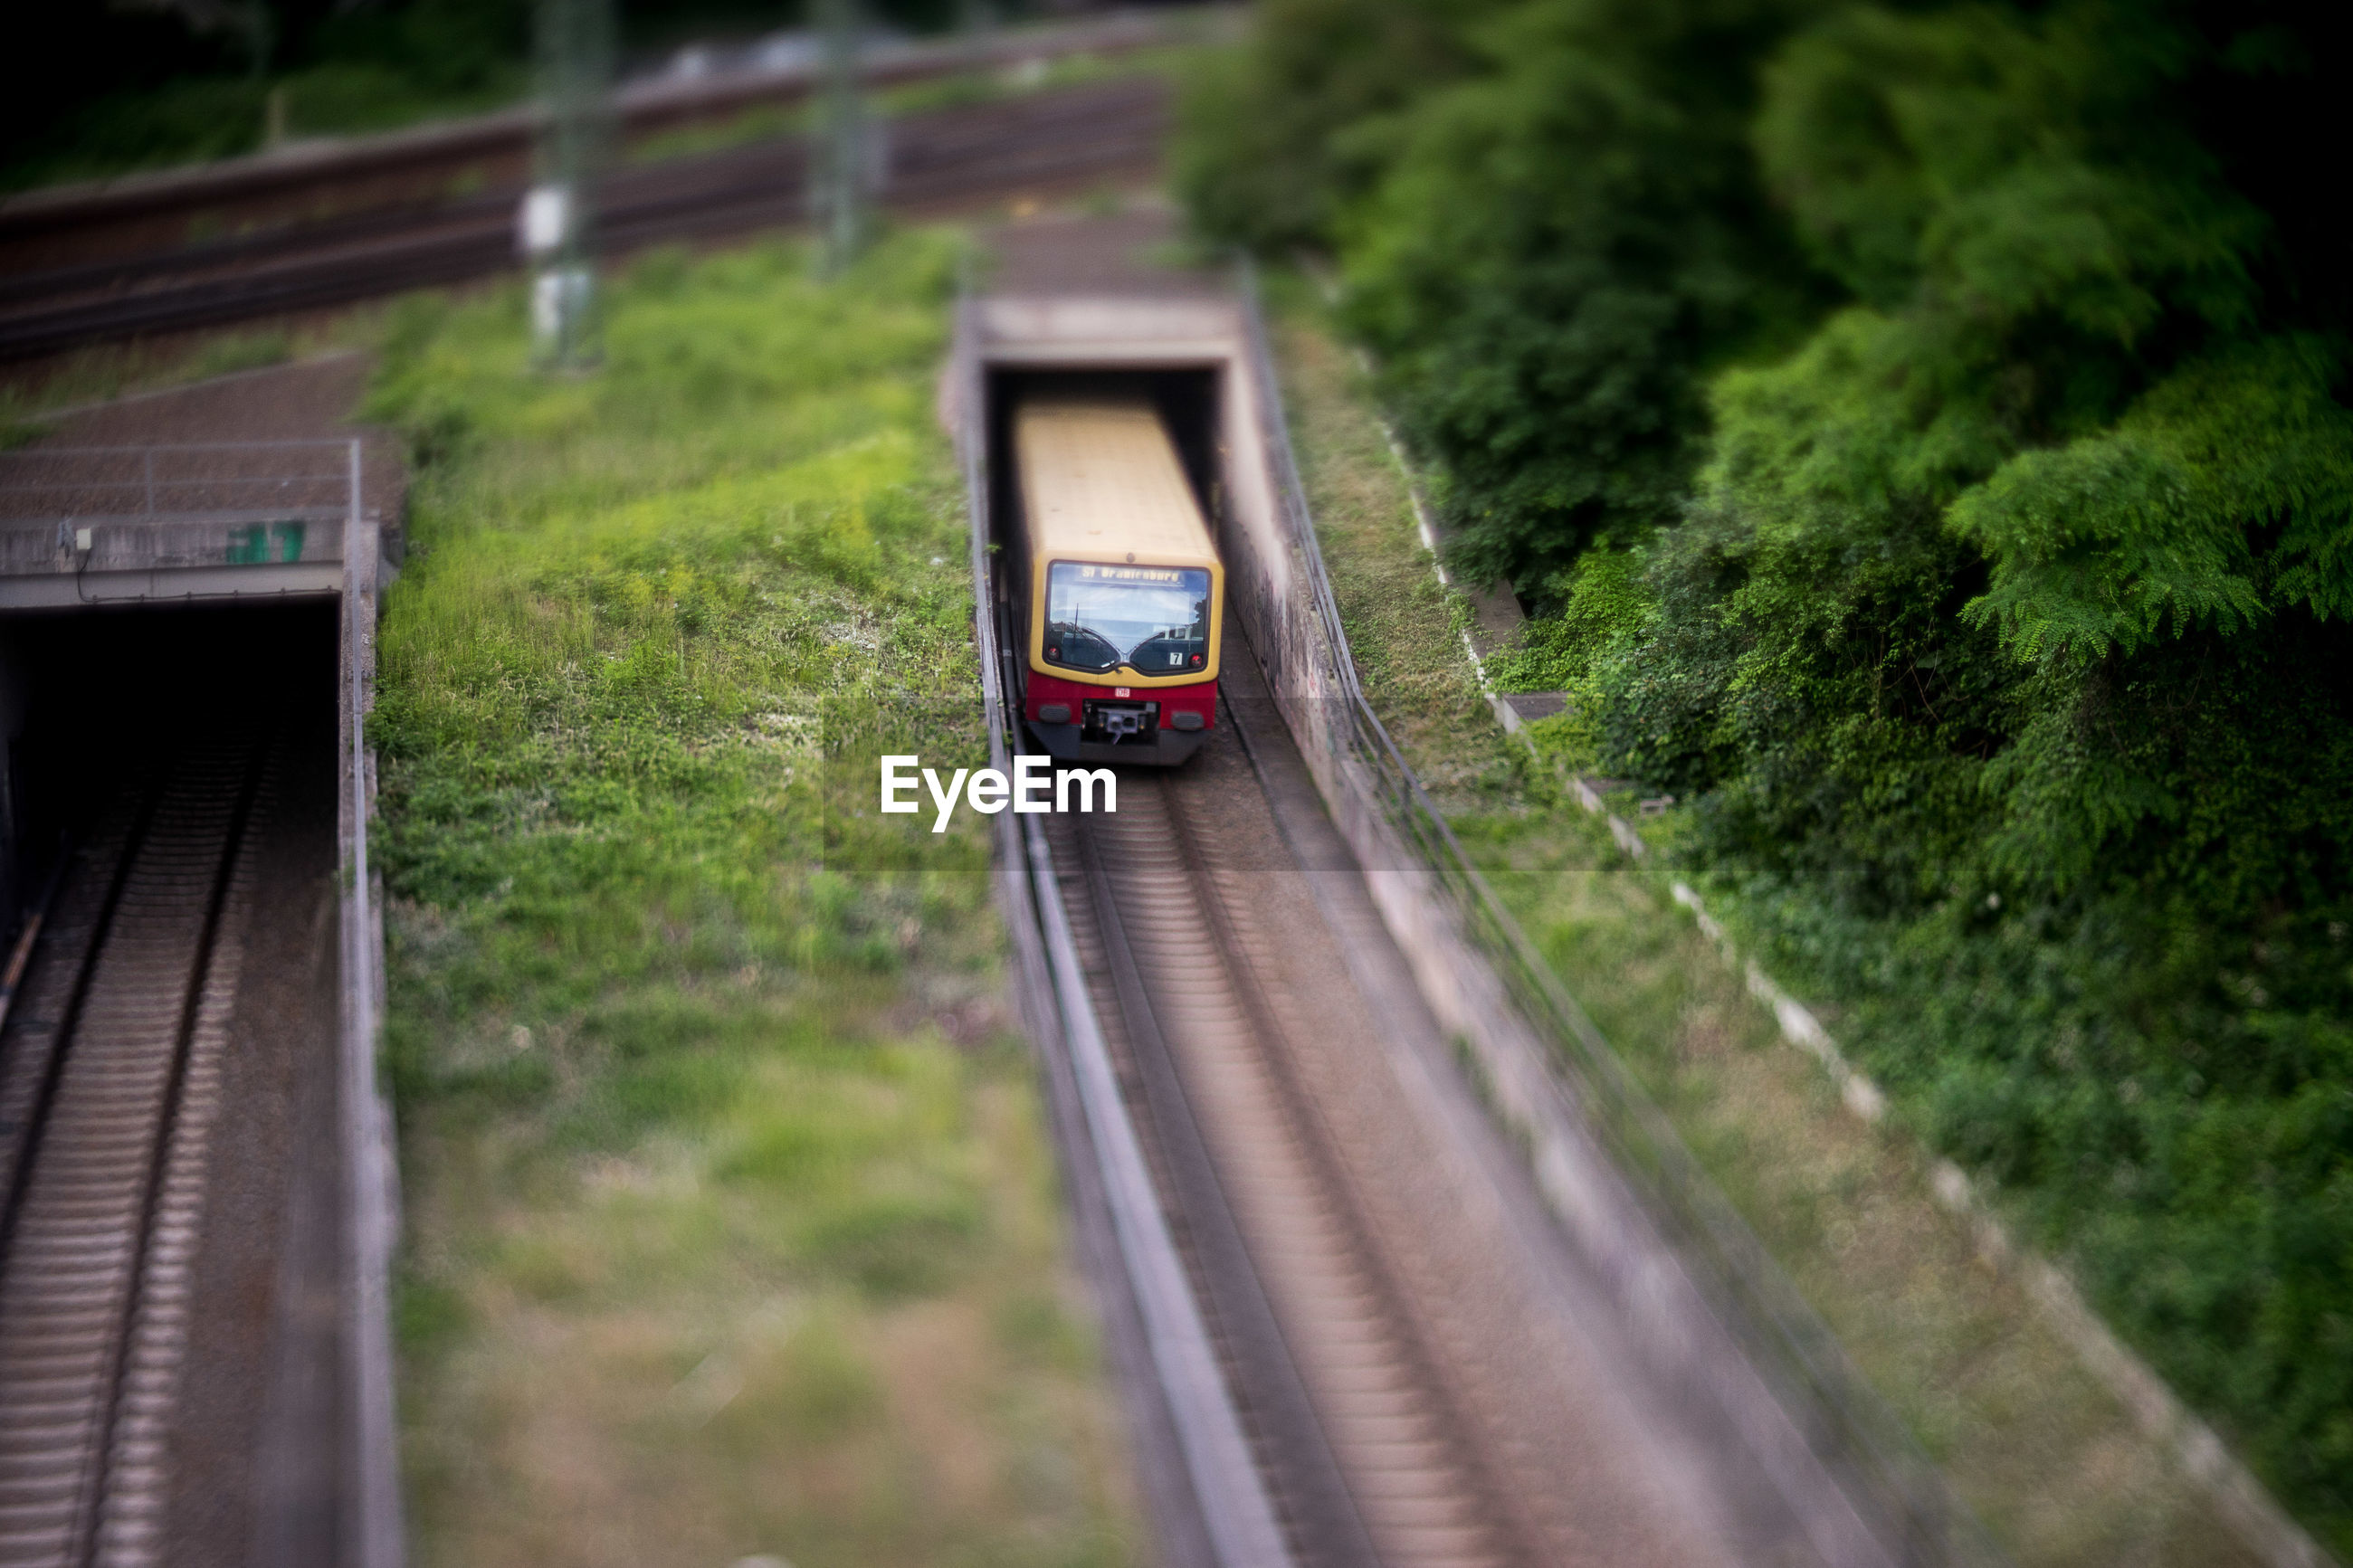 High angle view of train passing through tunnel